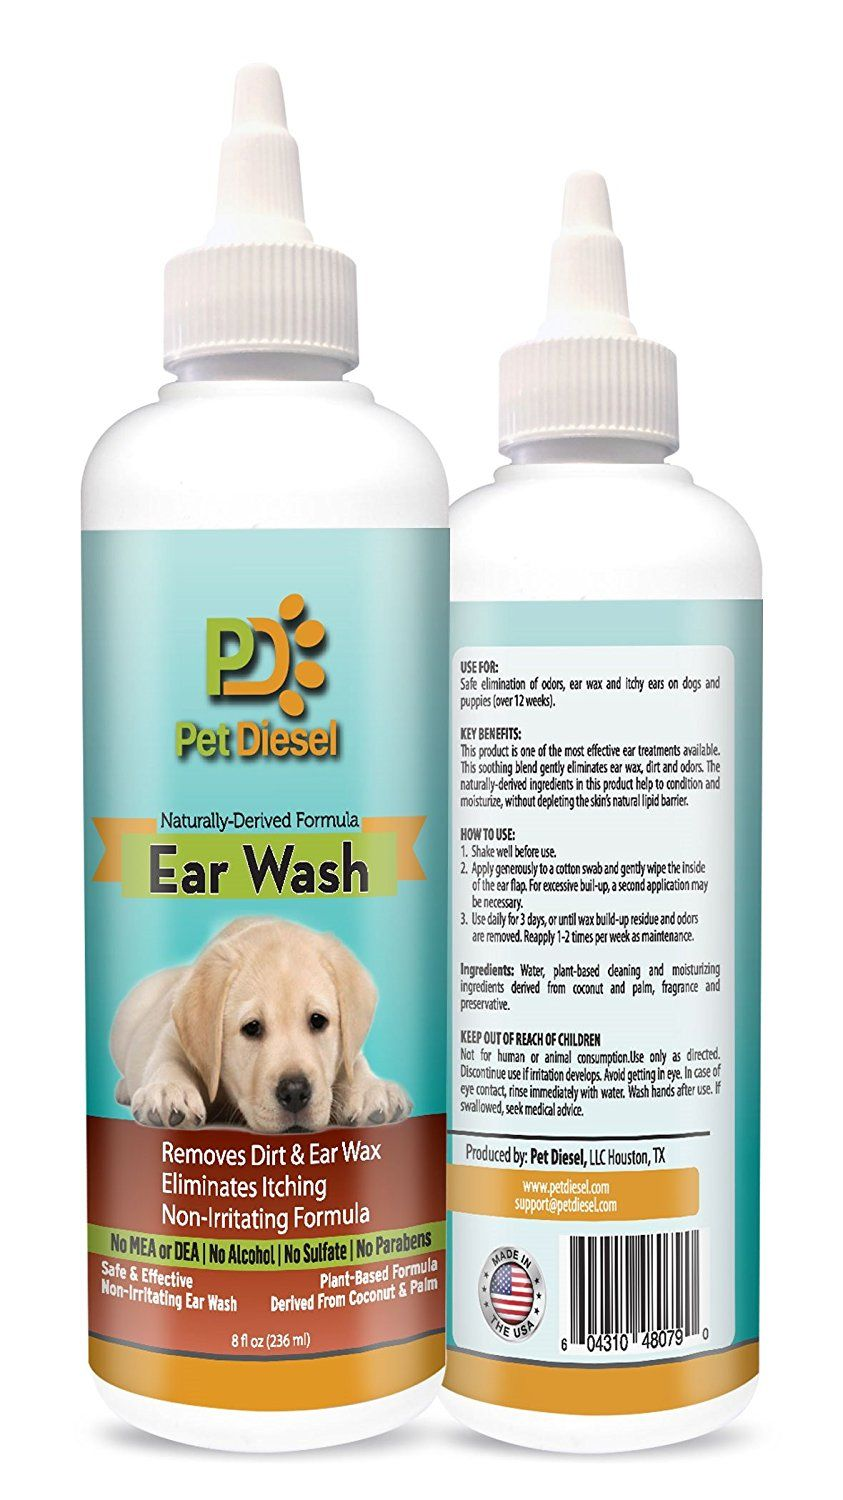 Dog Ear Wash Cleanser Ideal For Ear Wax Removal Itchy Ears Yeast And Odor Elimination Effective And Non Irritating Naturally Dog Ear Wash Ear Wax Removal Ear Wax